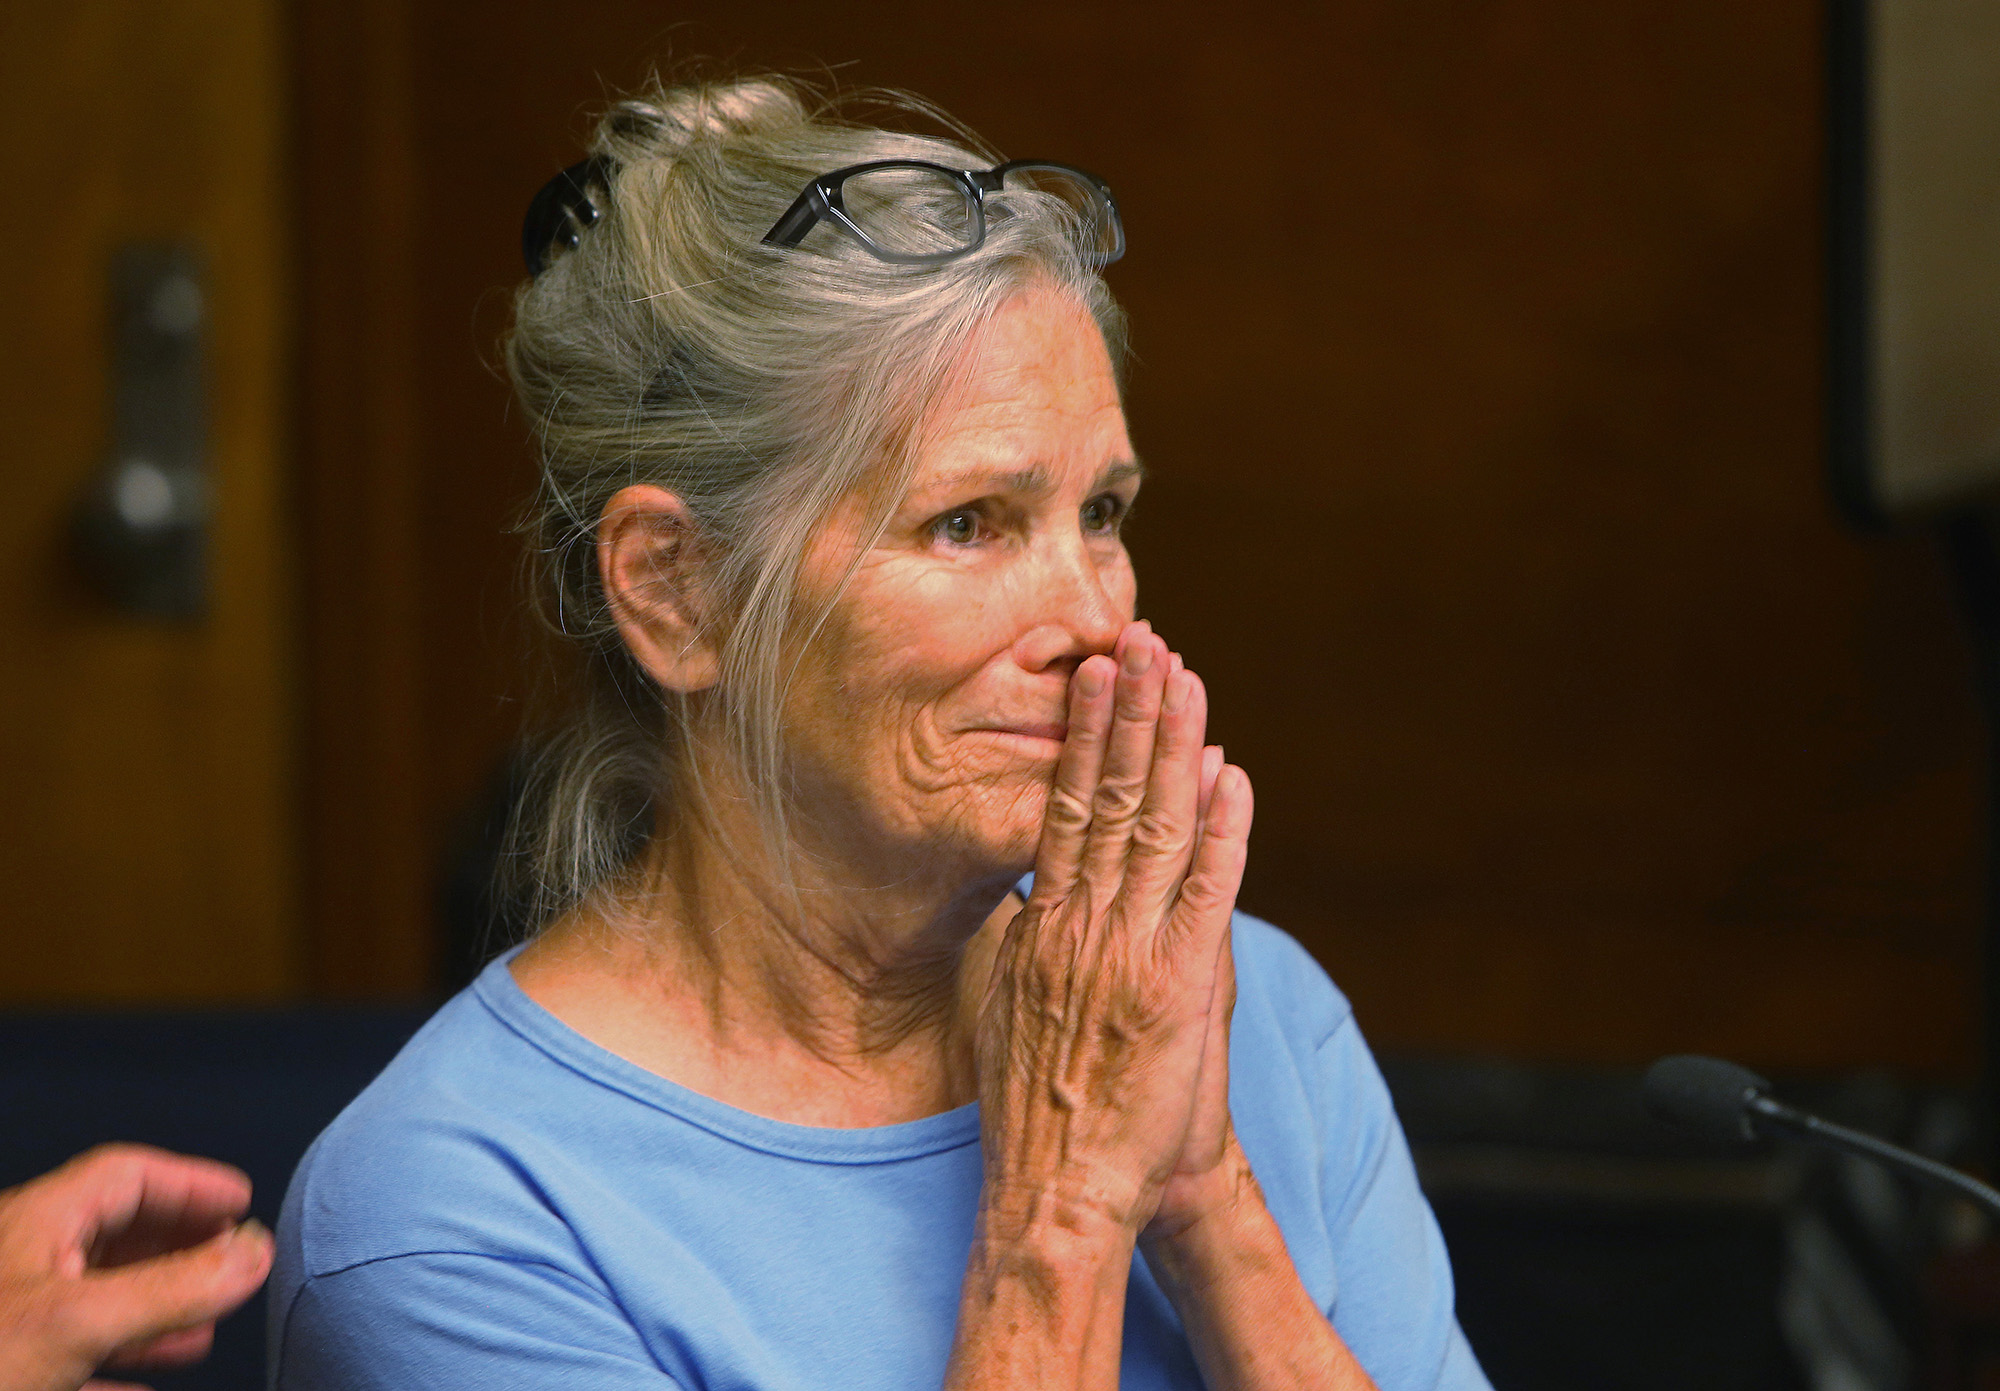 Leslie Van Houten is seen during a hearing on Sept. 6, 2017, at the California Institution for Women in Corona. (Credit: Stan Lim, Inland Valley Daily Bulletin/SCNG/pool)